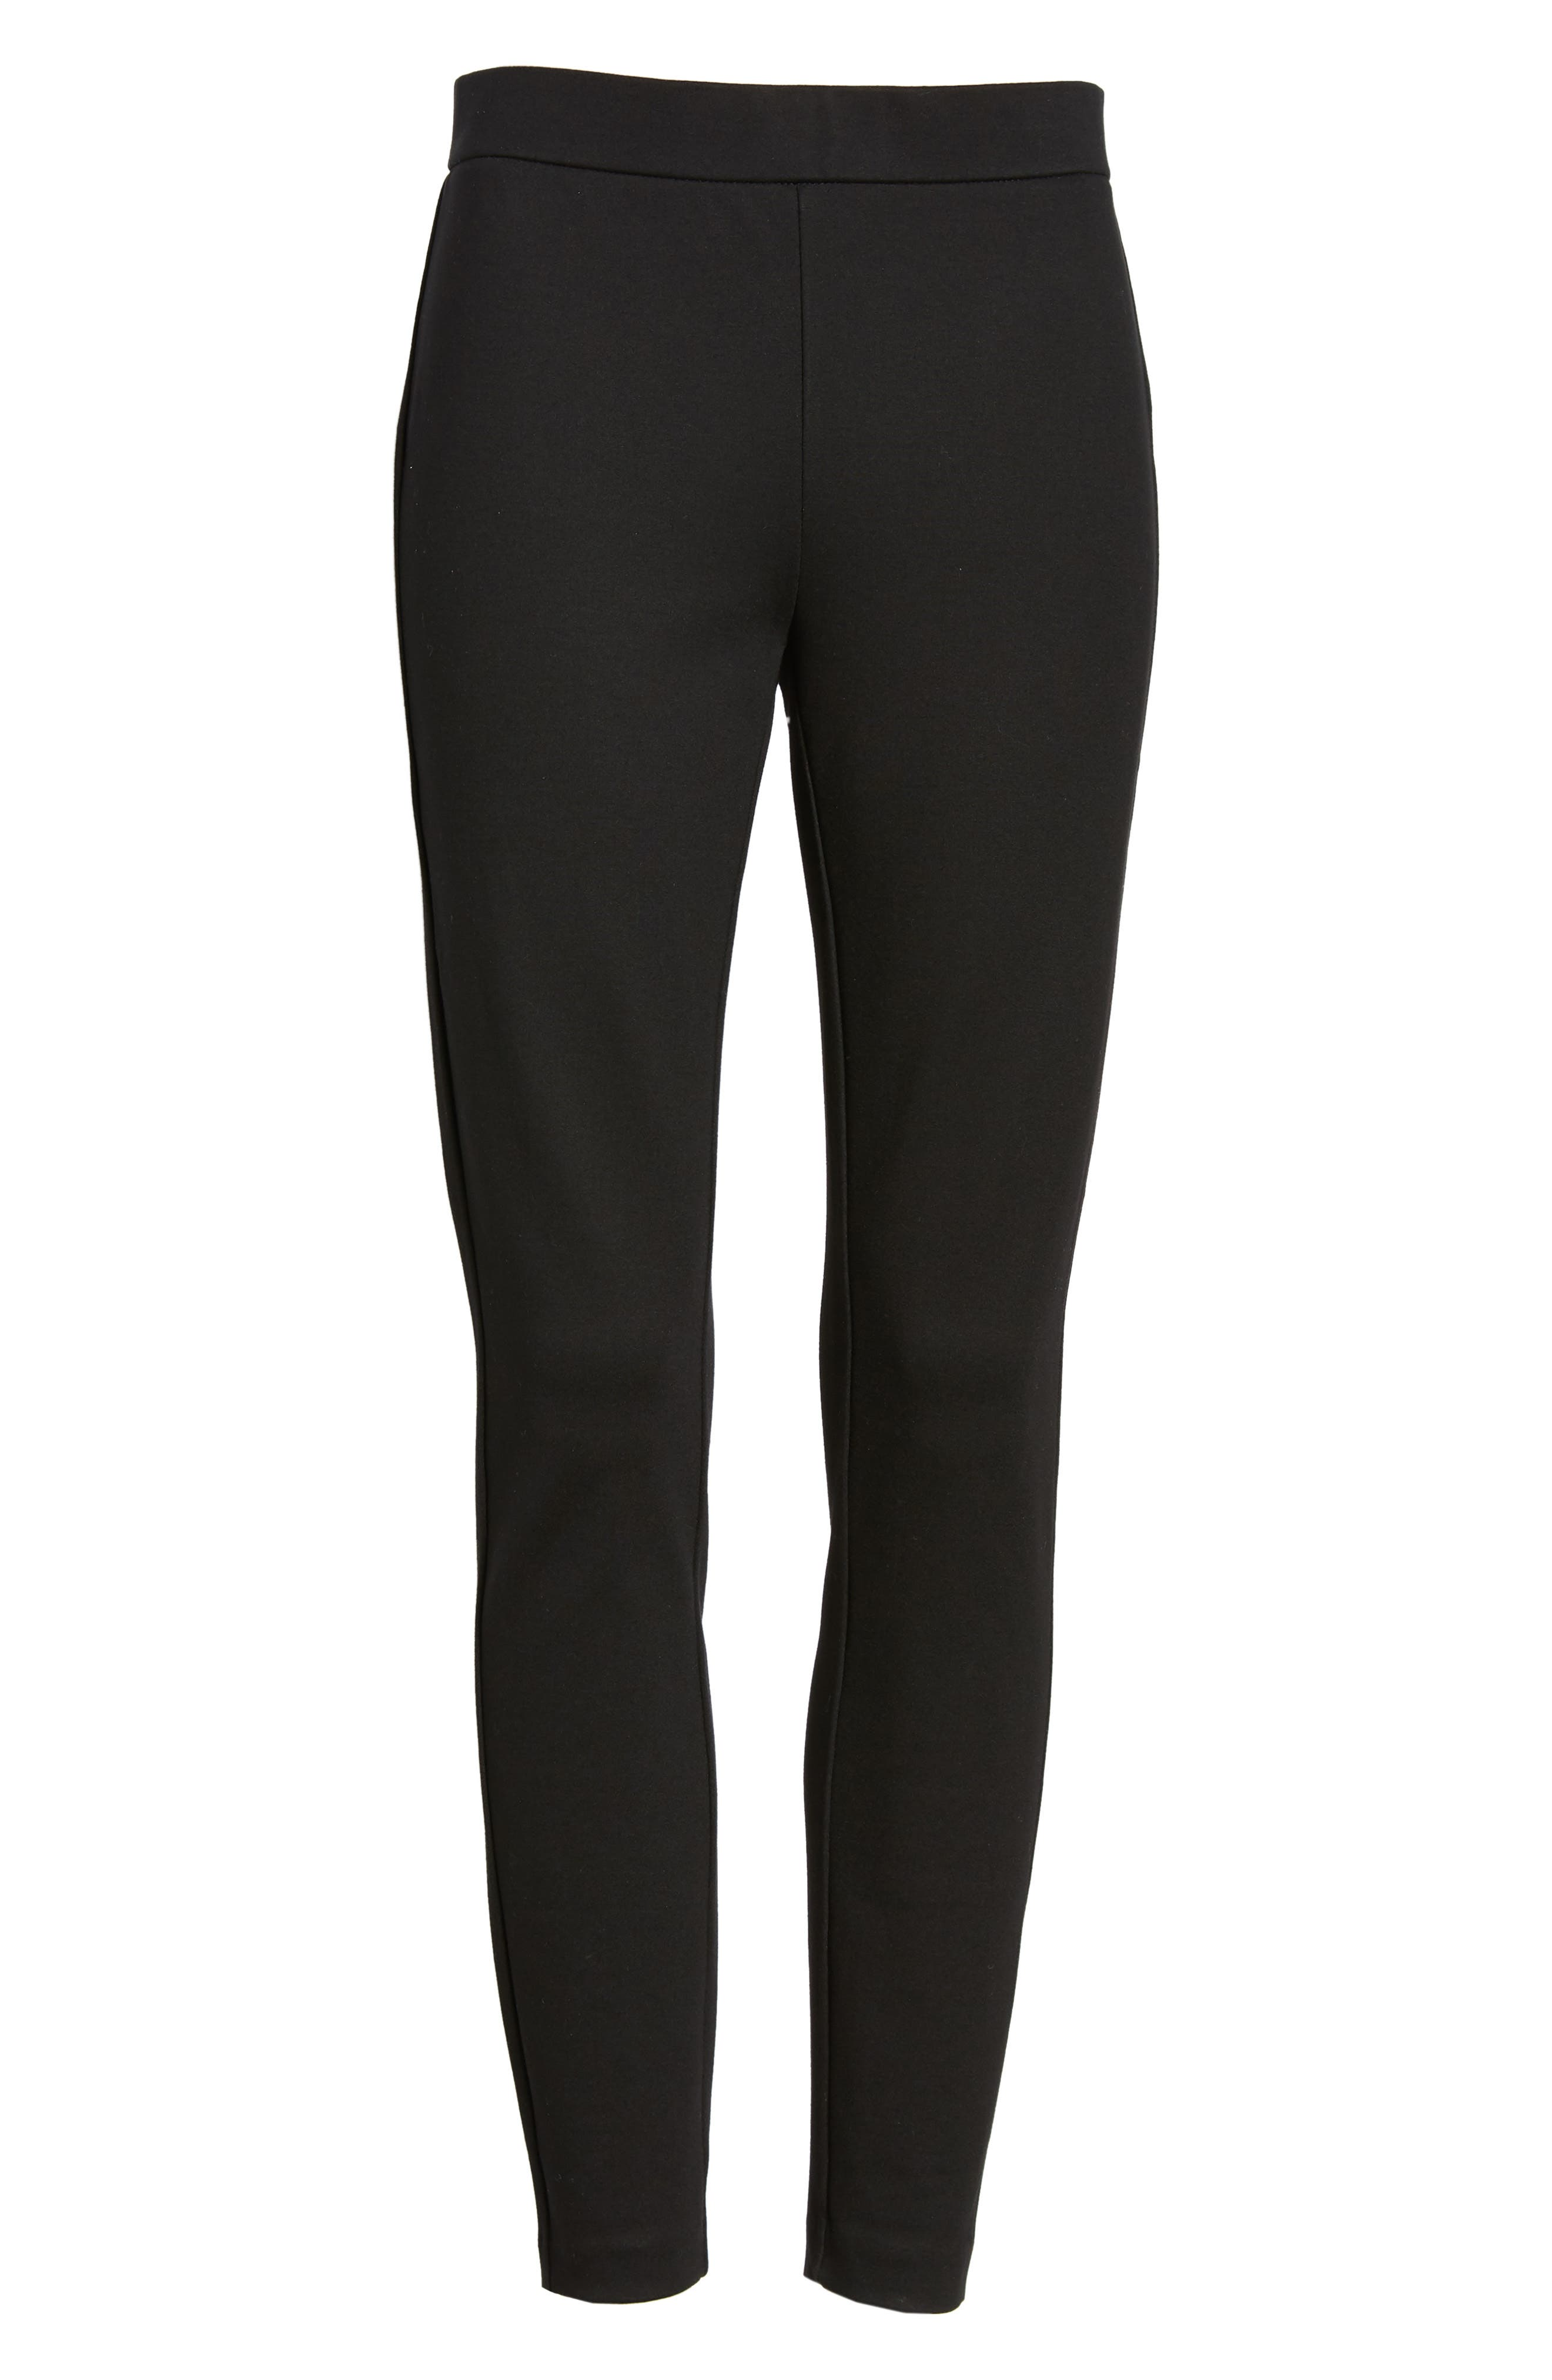 Any Day Stretch Ponte Pants,                             Alternate thumbnail 7, color,                             001